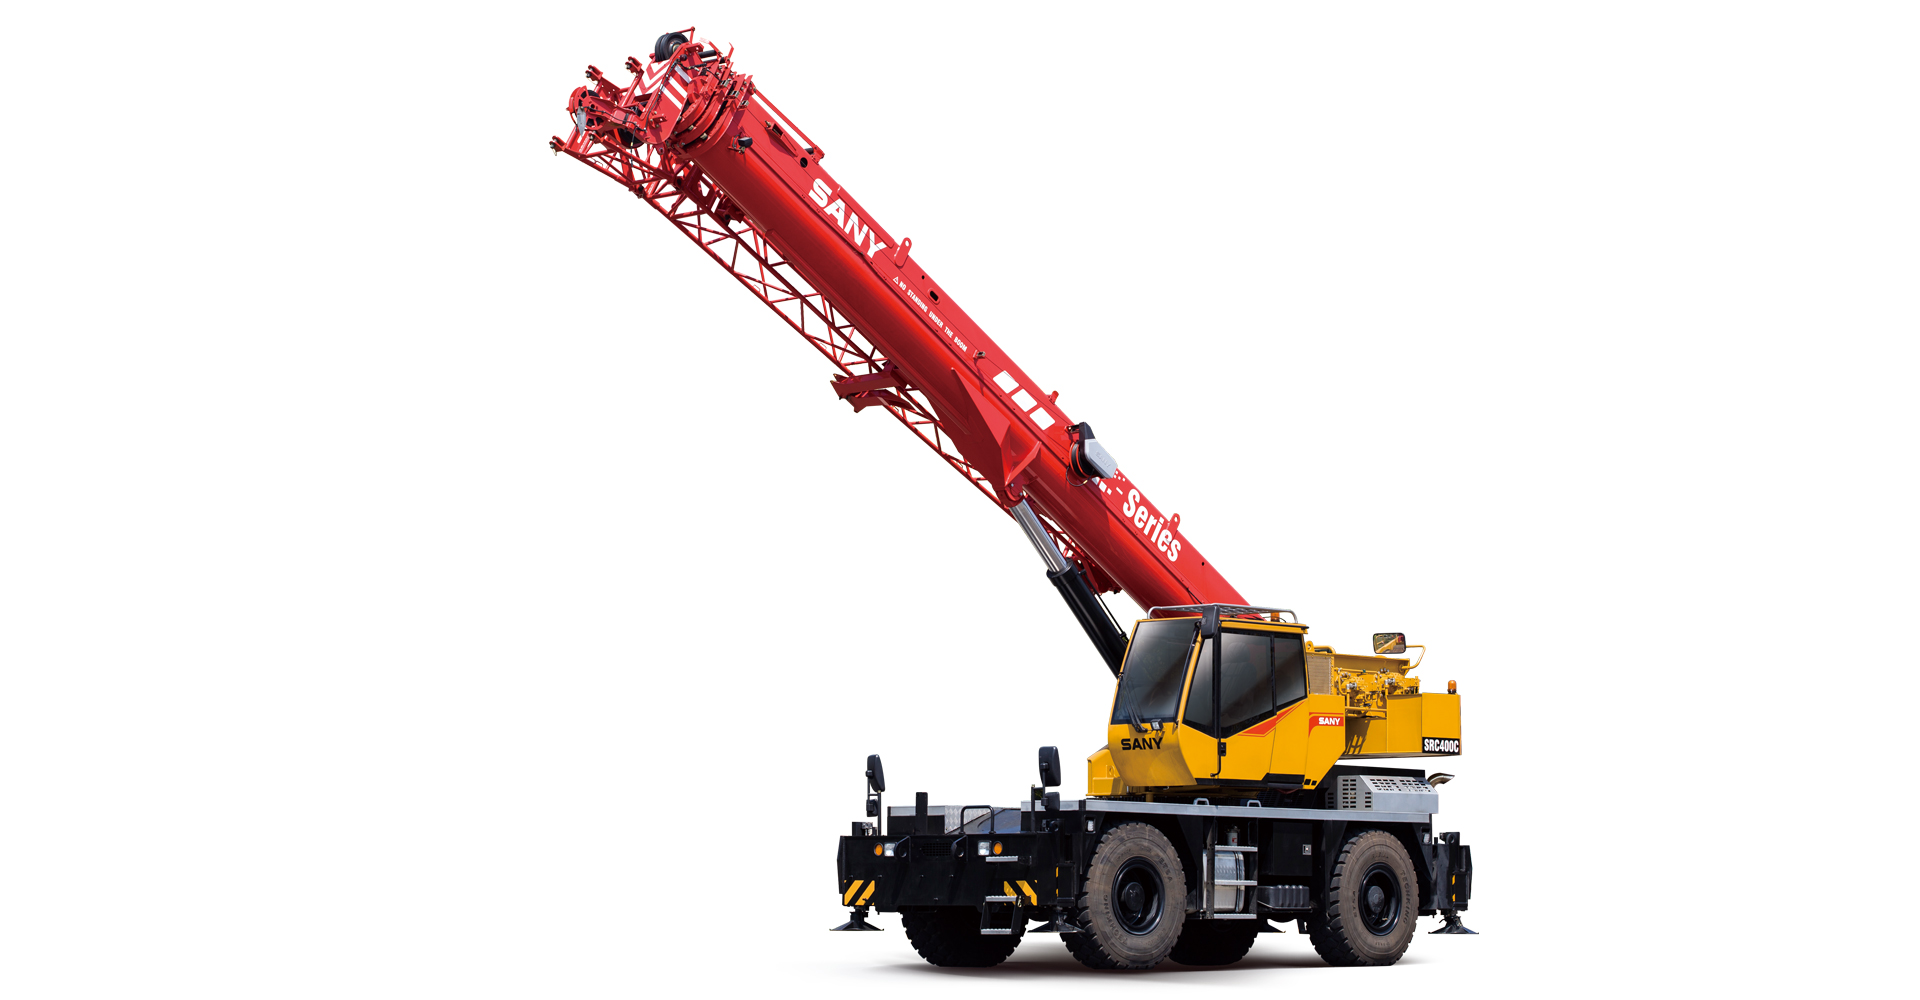 SRC400C 40 tons Rough Terrain Crane